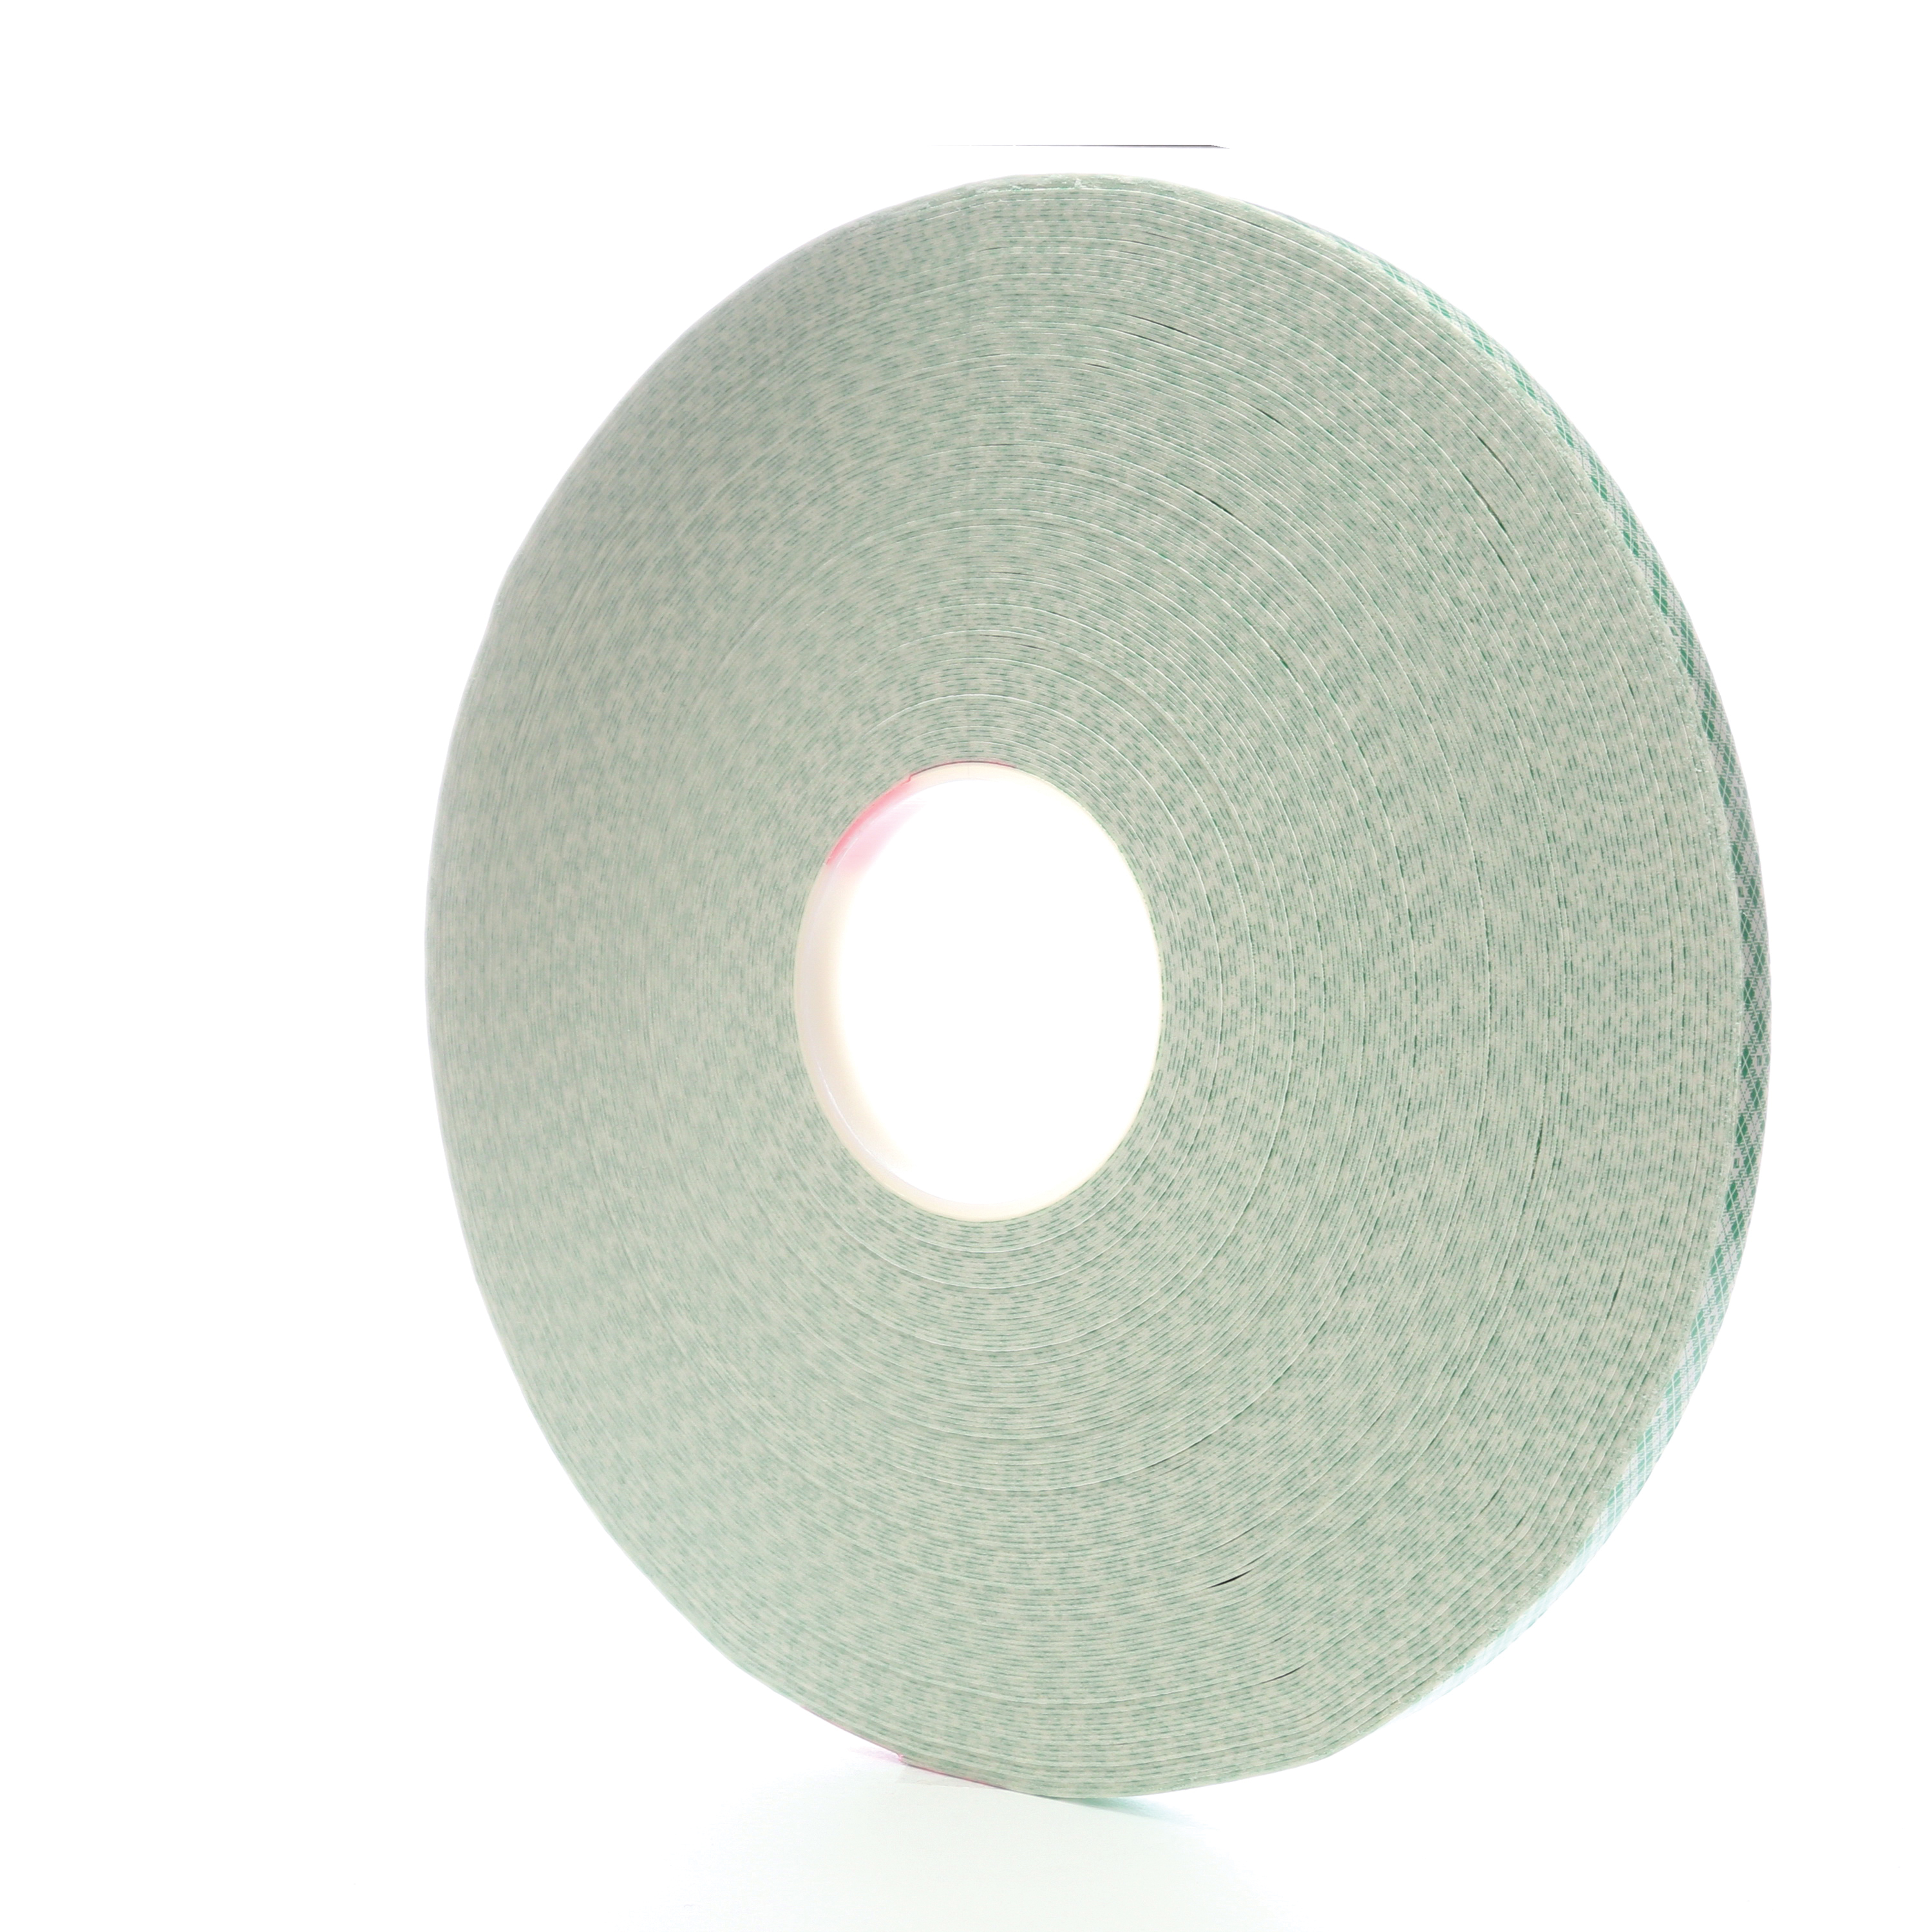 3M™ 021200-06456 Double Coated Tape, 72 yd L x 1/2 in W, 31 mil THK, Acrylic Adhesive, Urethane Foam Backing, Off-White